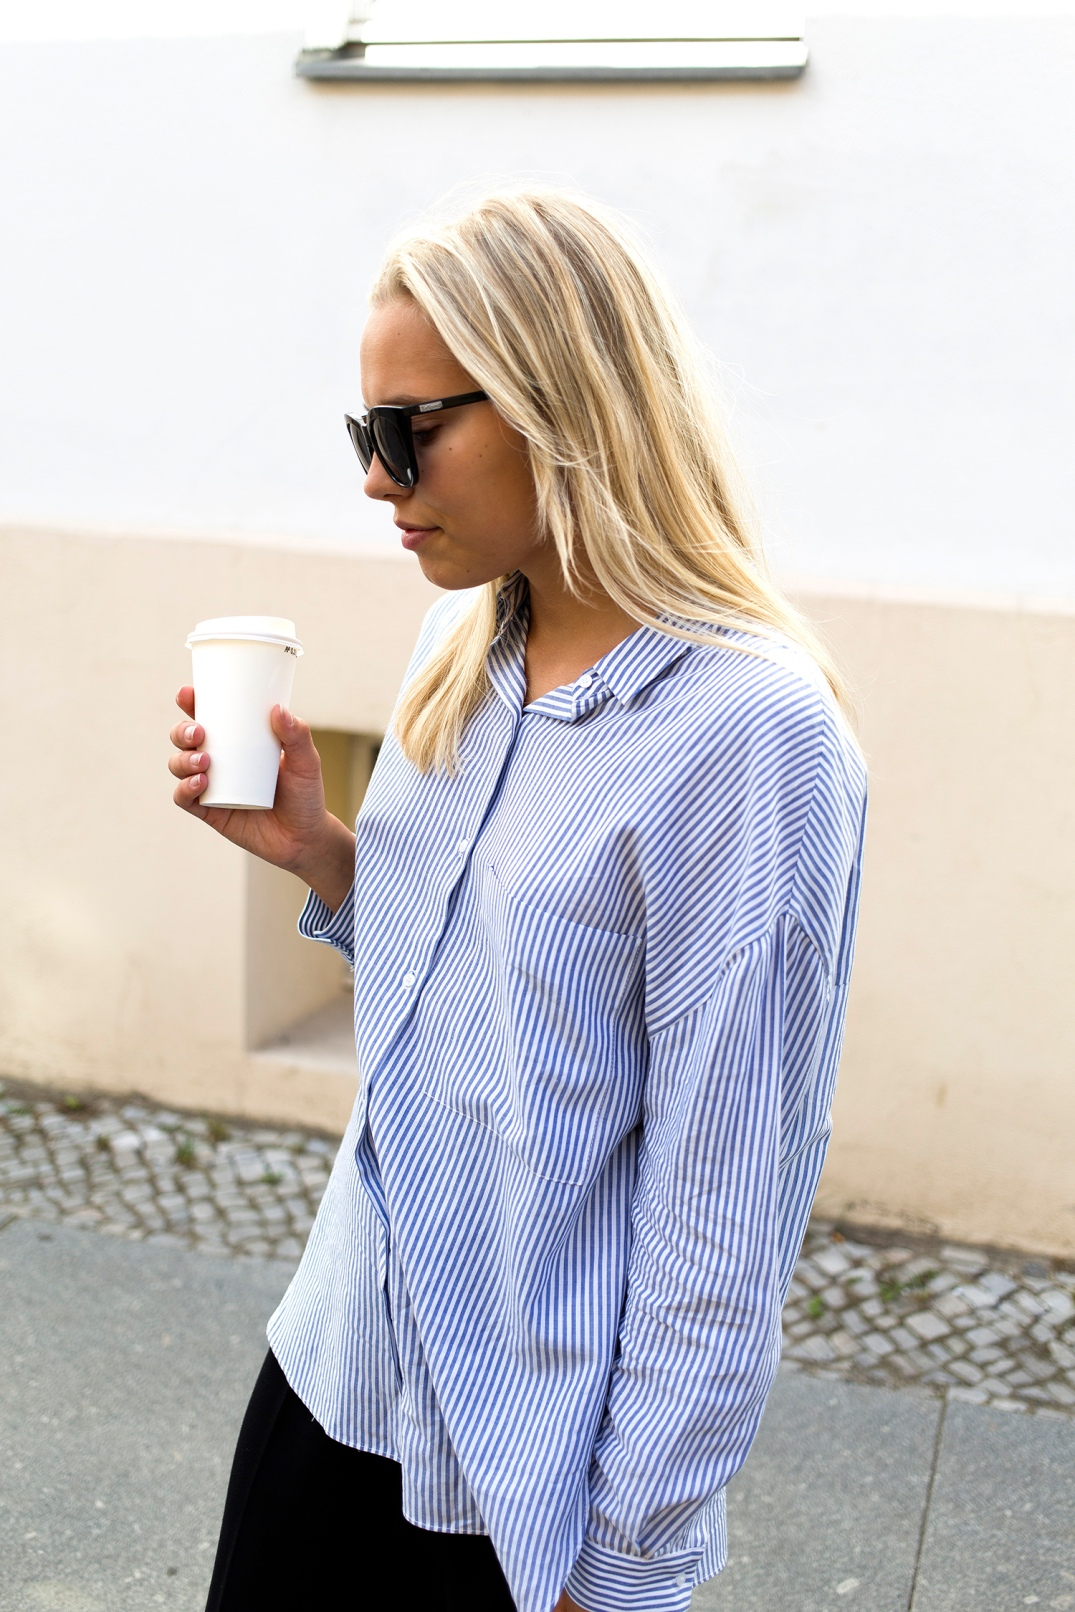 outfit_RKS_20160703-CB6A0008